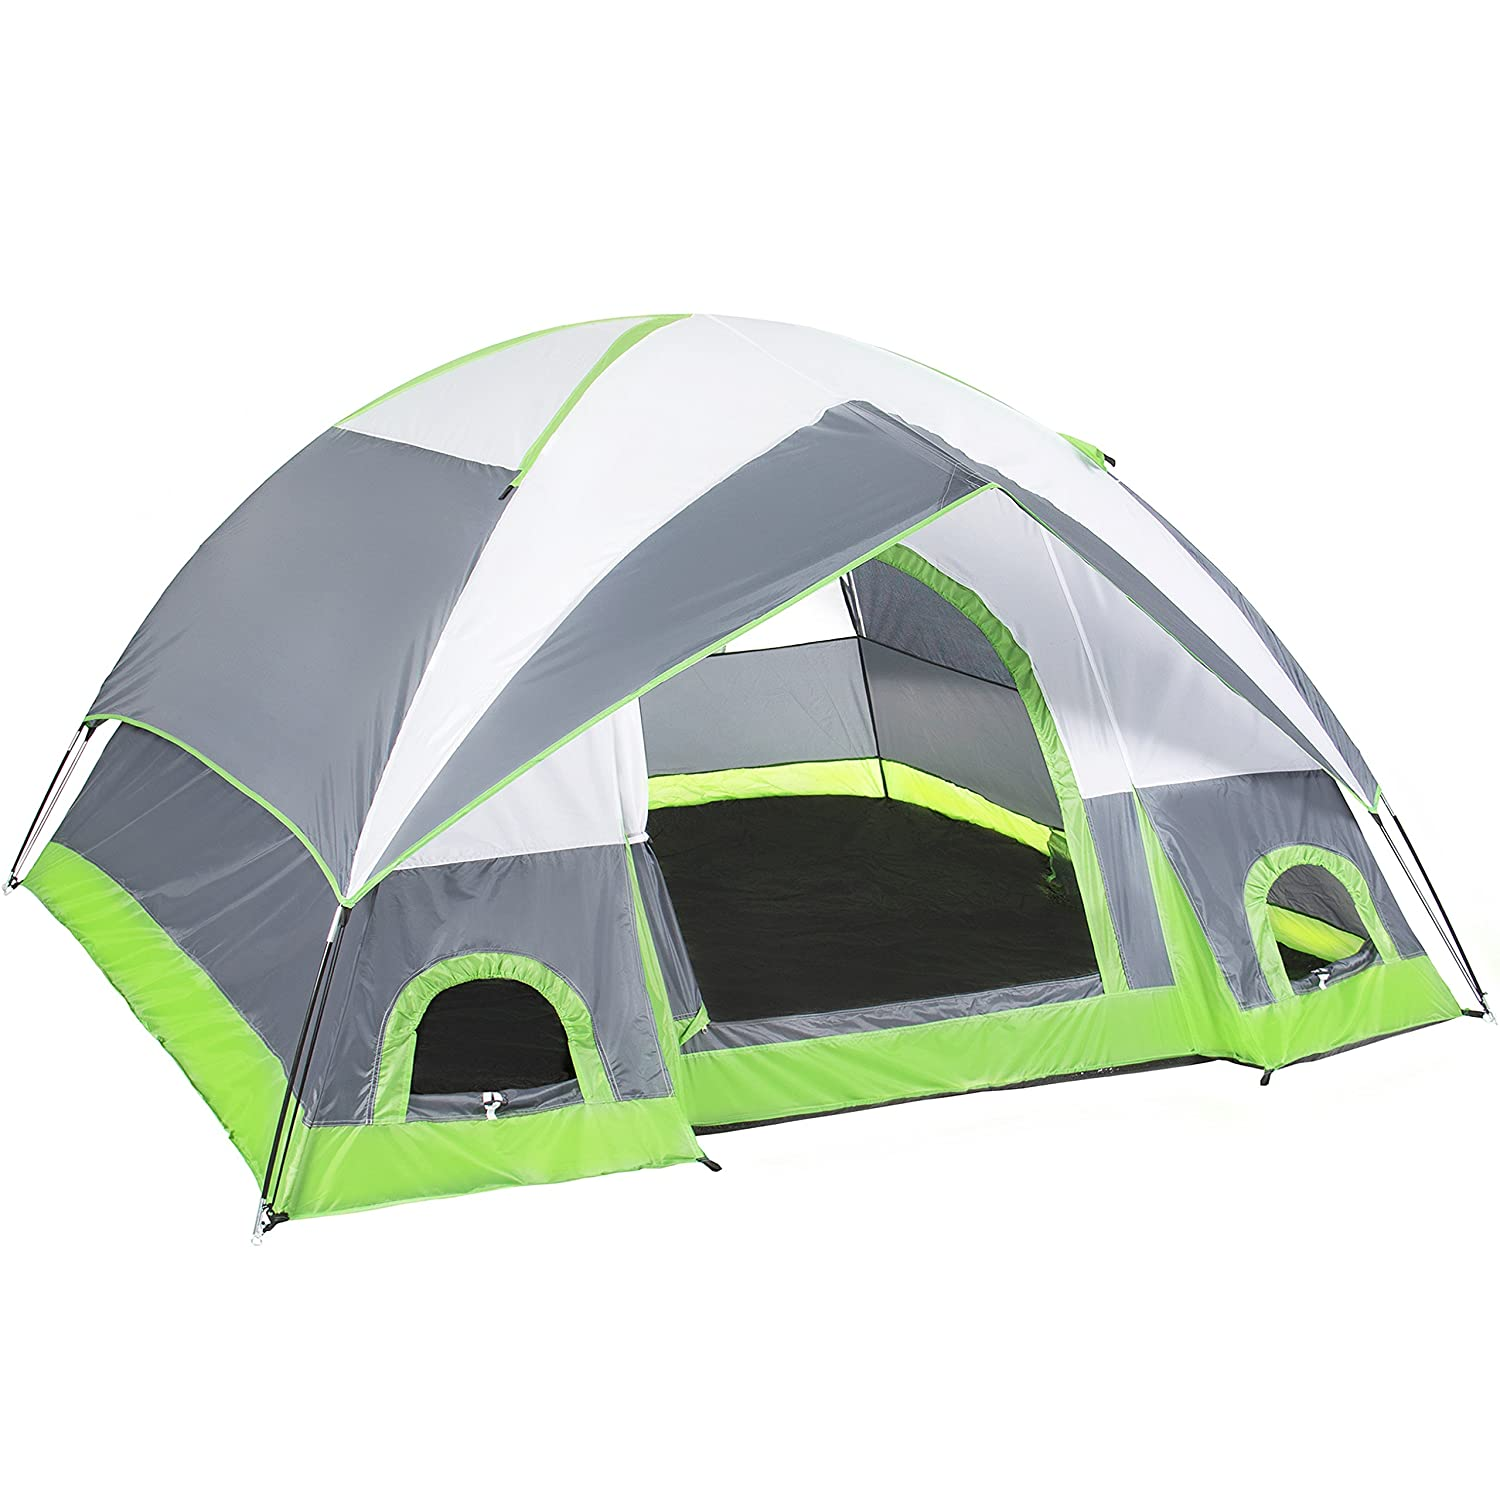 Best Choice Products 4 Person Camping Tent Family Outdoor Sleeping Dome Water Resistant W/Carry Bag 141[並行輸入]   B01GWHF6ZI